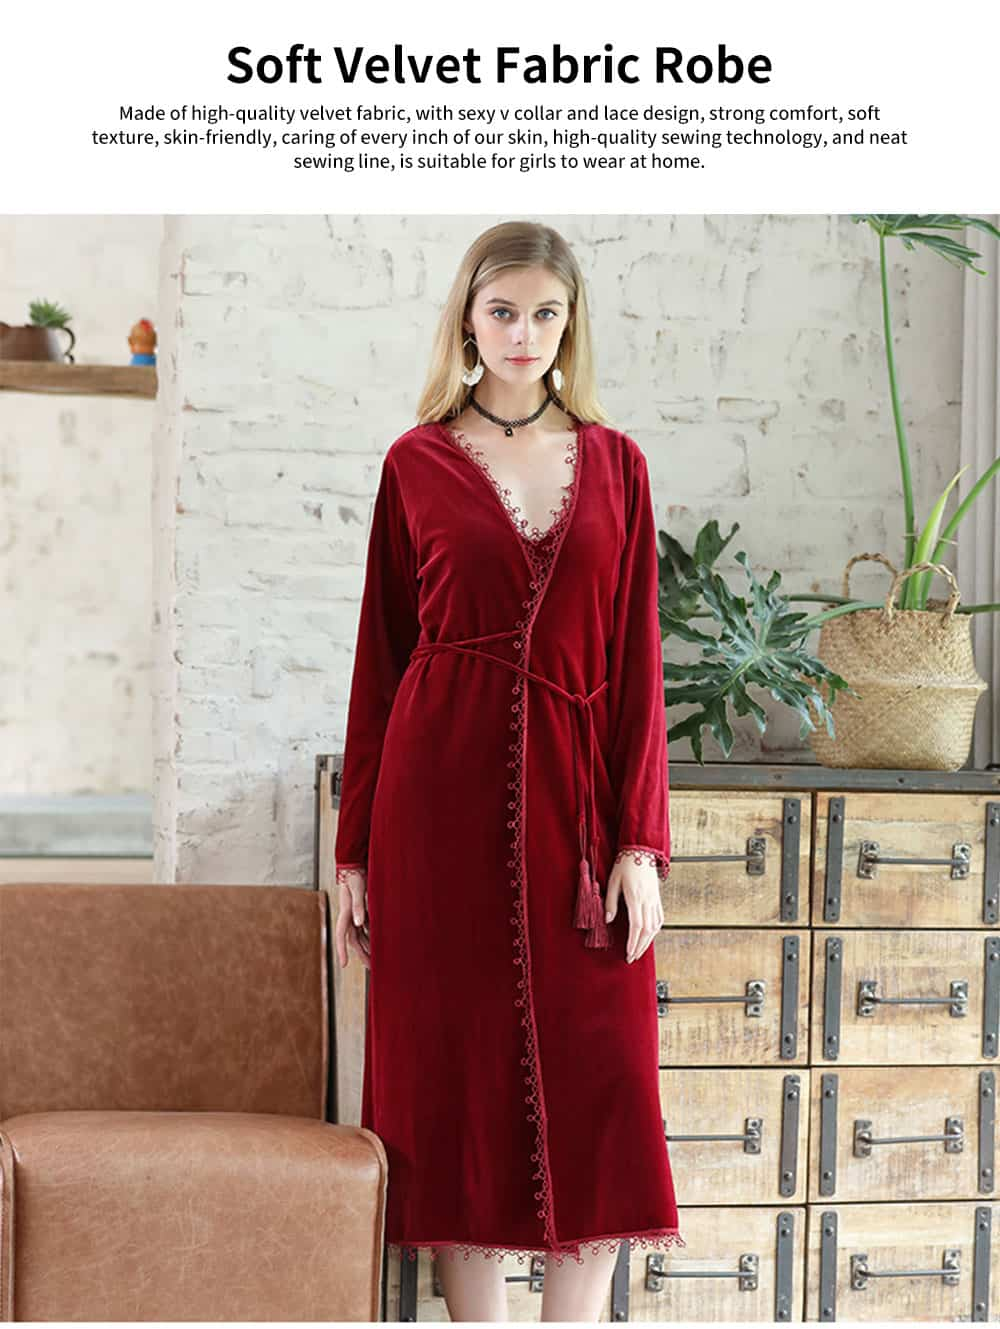 Soft Velvet Fabric Robe, Ladies Long Thick Pajamas, with Sexy V Collar and Point Around Lace Design 0